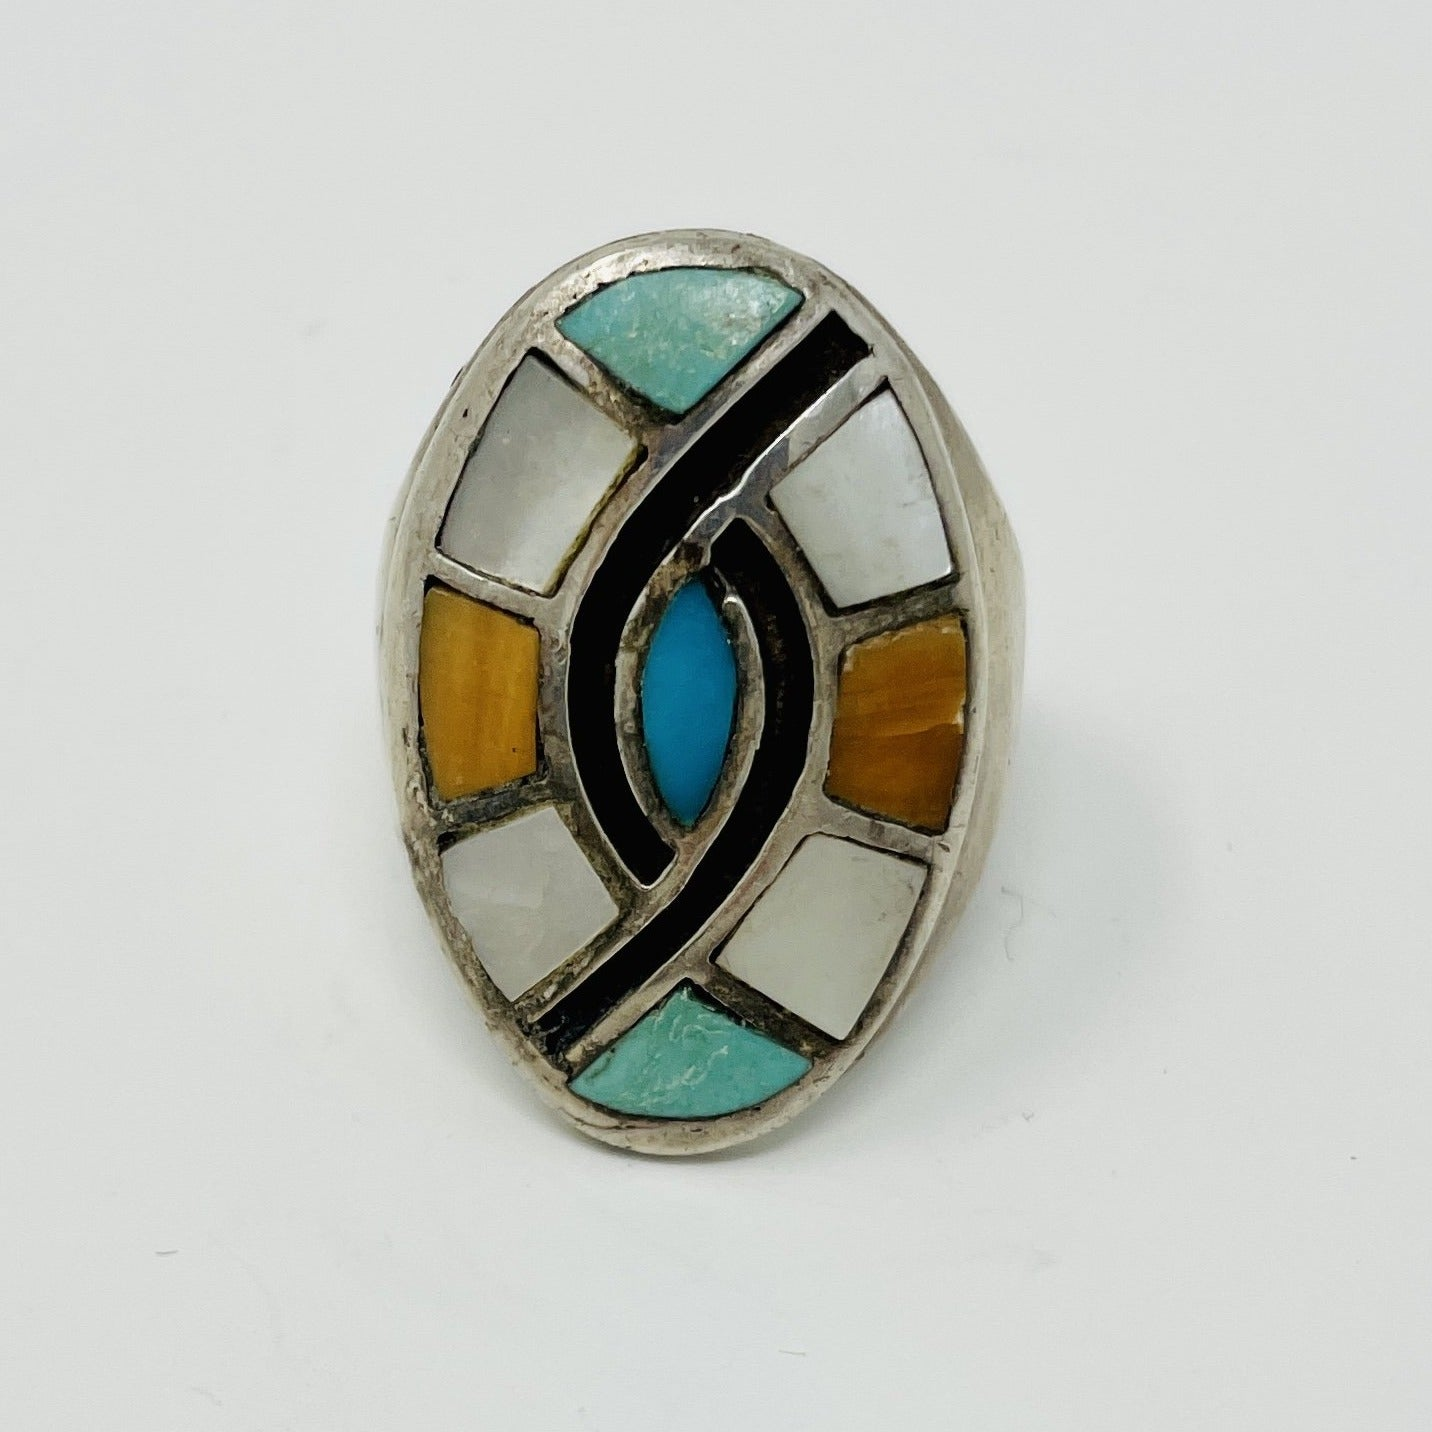 Zuni Silver Ring with Chanel Inlay